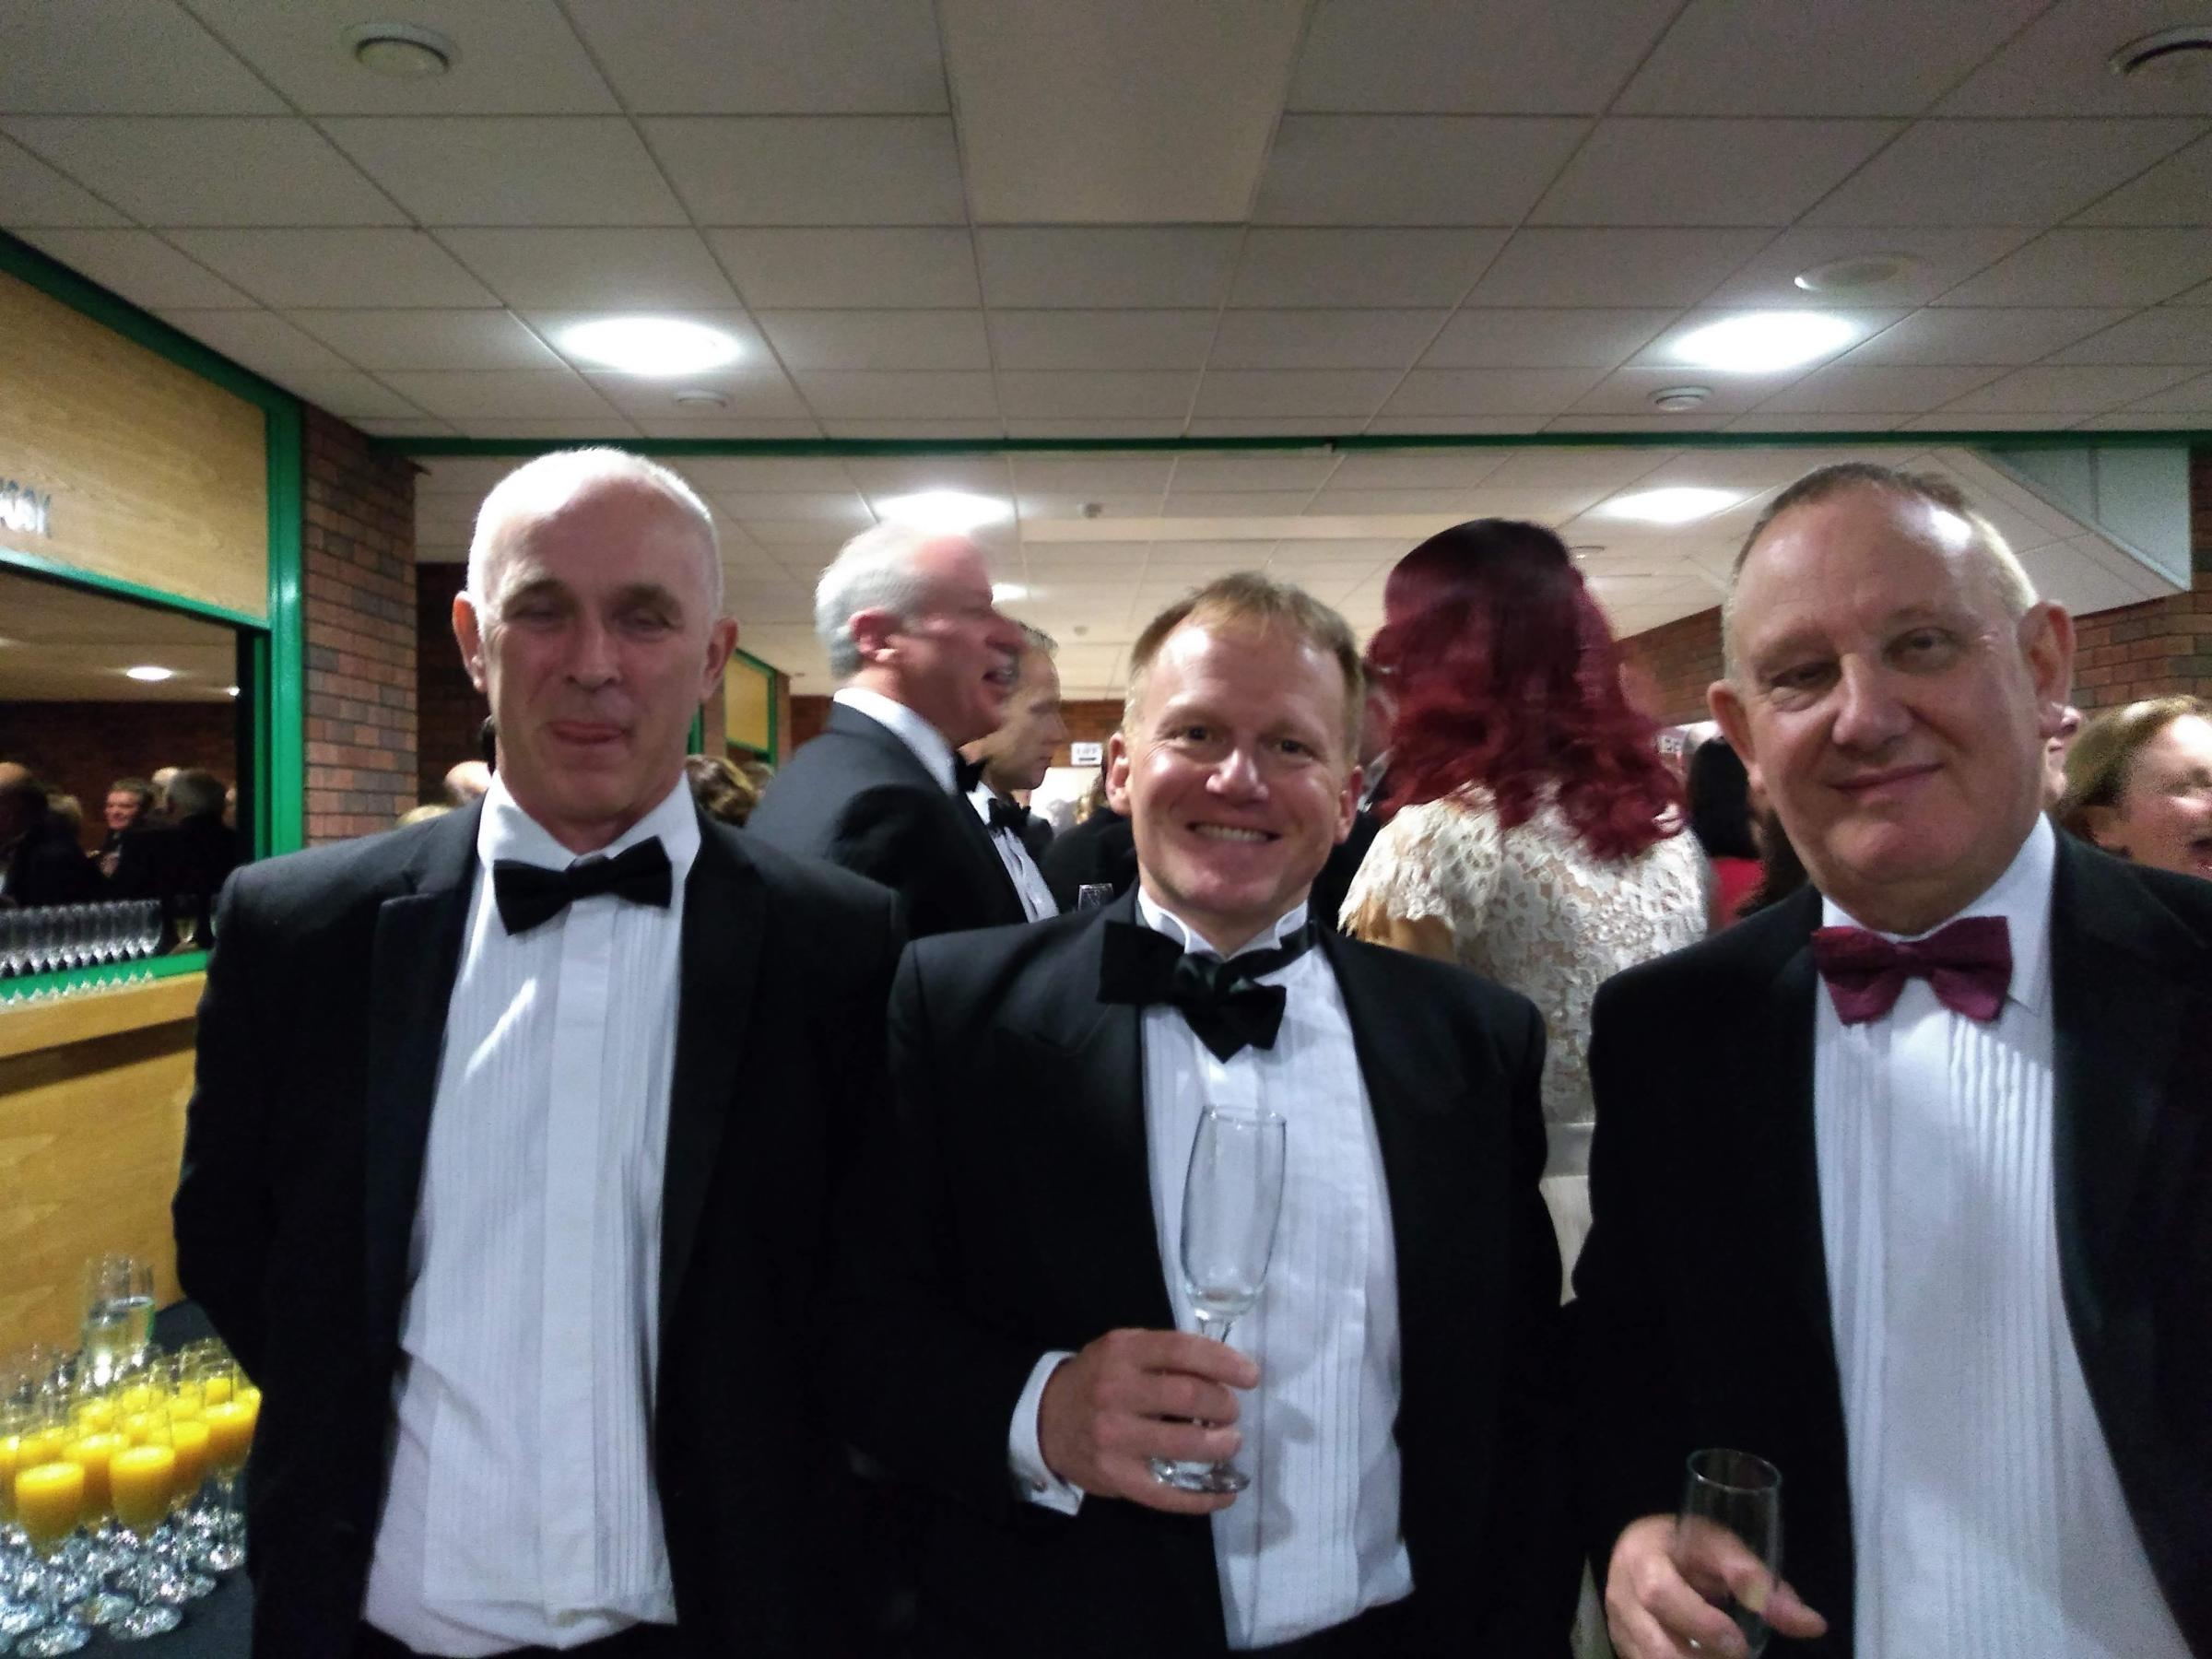 AWARD: Airband's Richard Blackburn, finance manager Andrew Price and operations director Pete Mathers